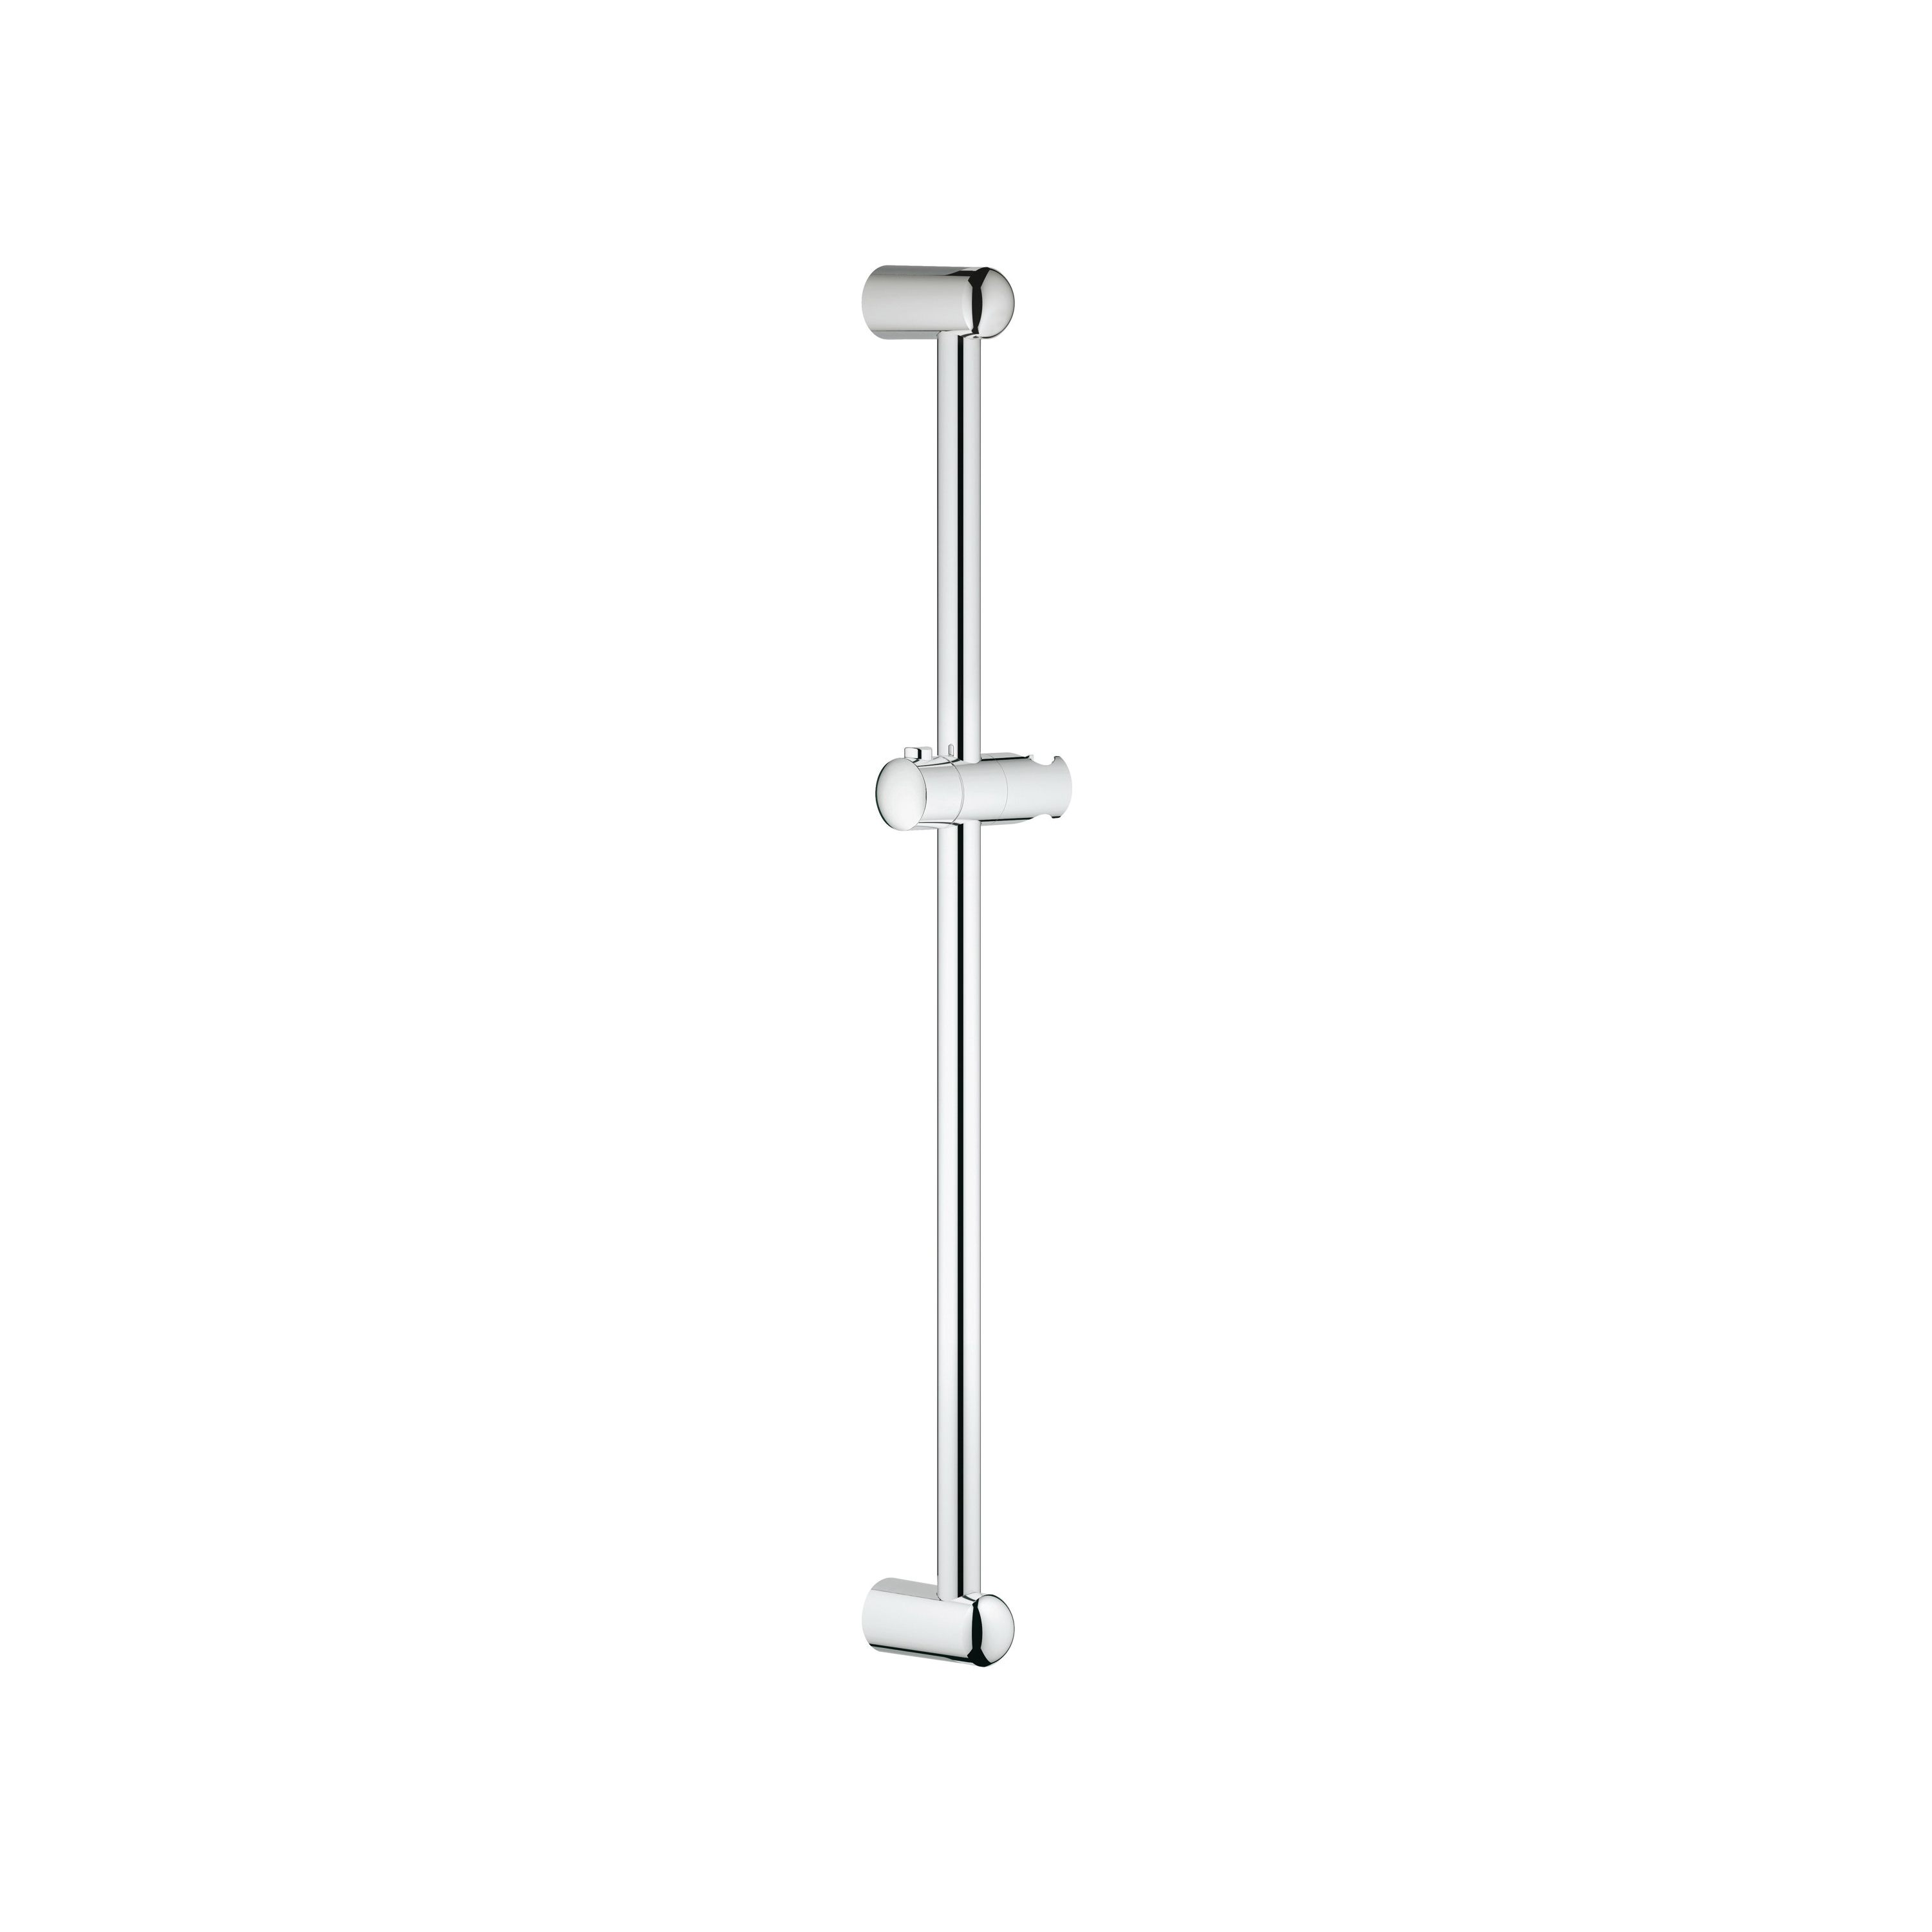 GROHE 27523000 New Tempesta® Shower Bar, 24 in, Import